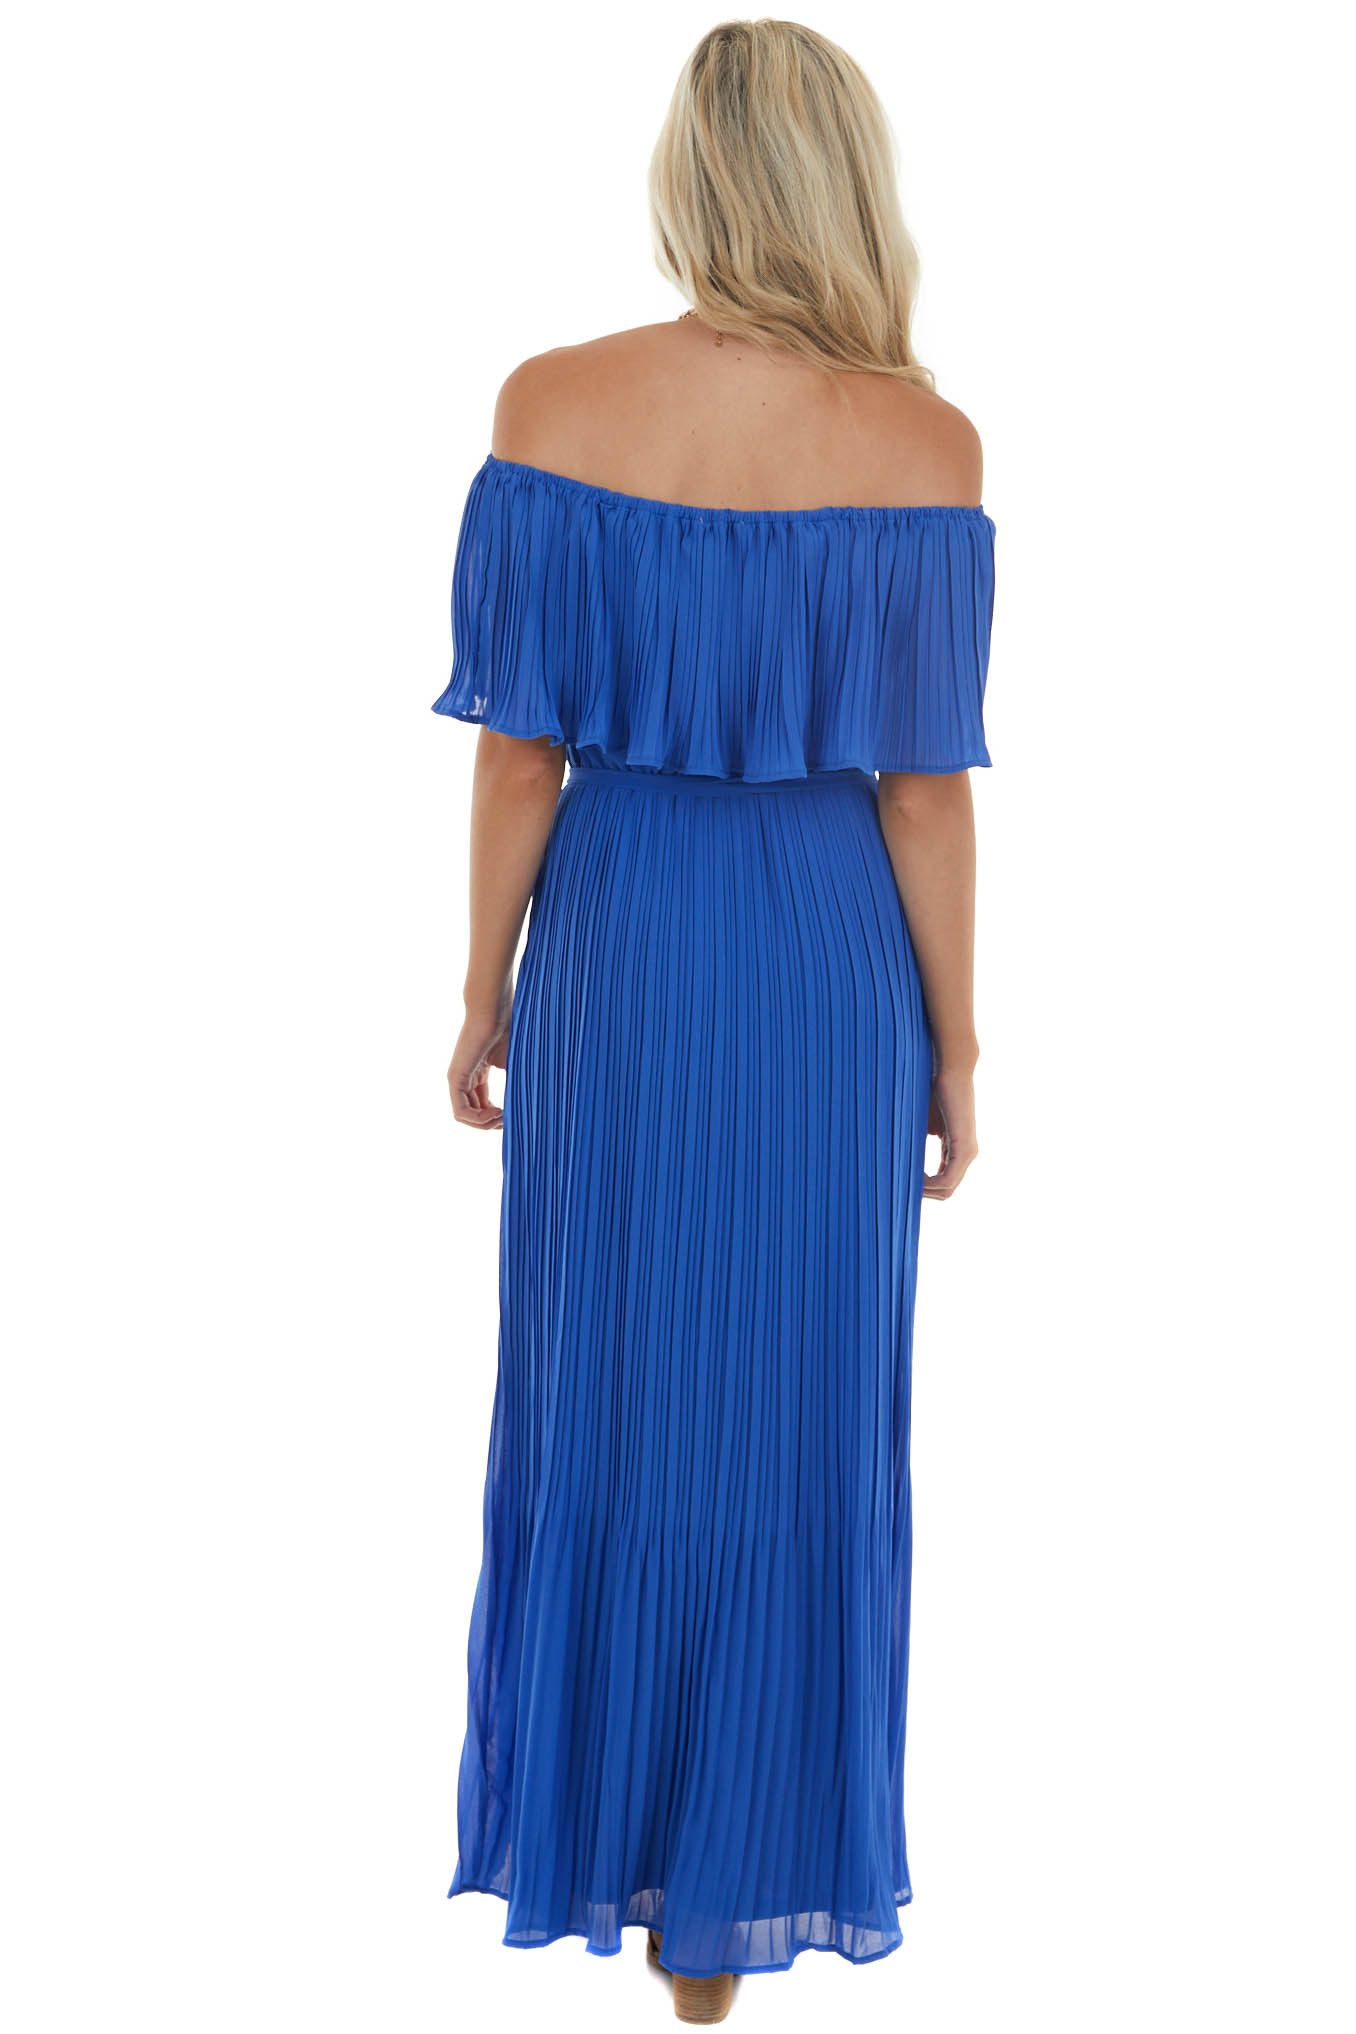 Cobalt Pleated Maxi Dress with Overlay Bust and Waist Tie